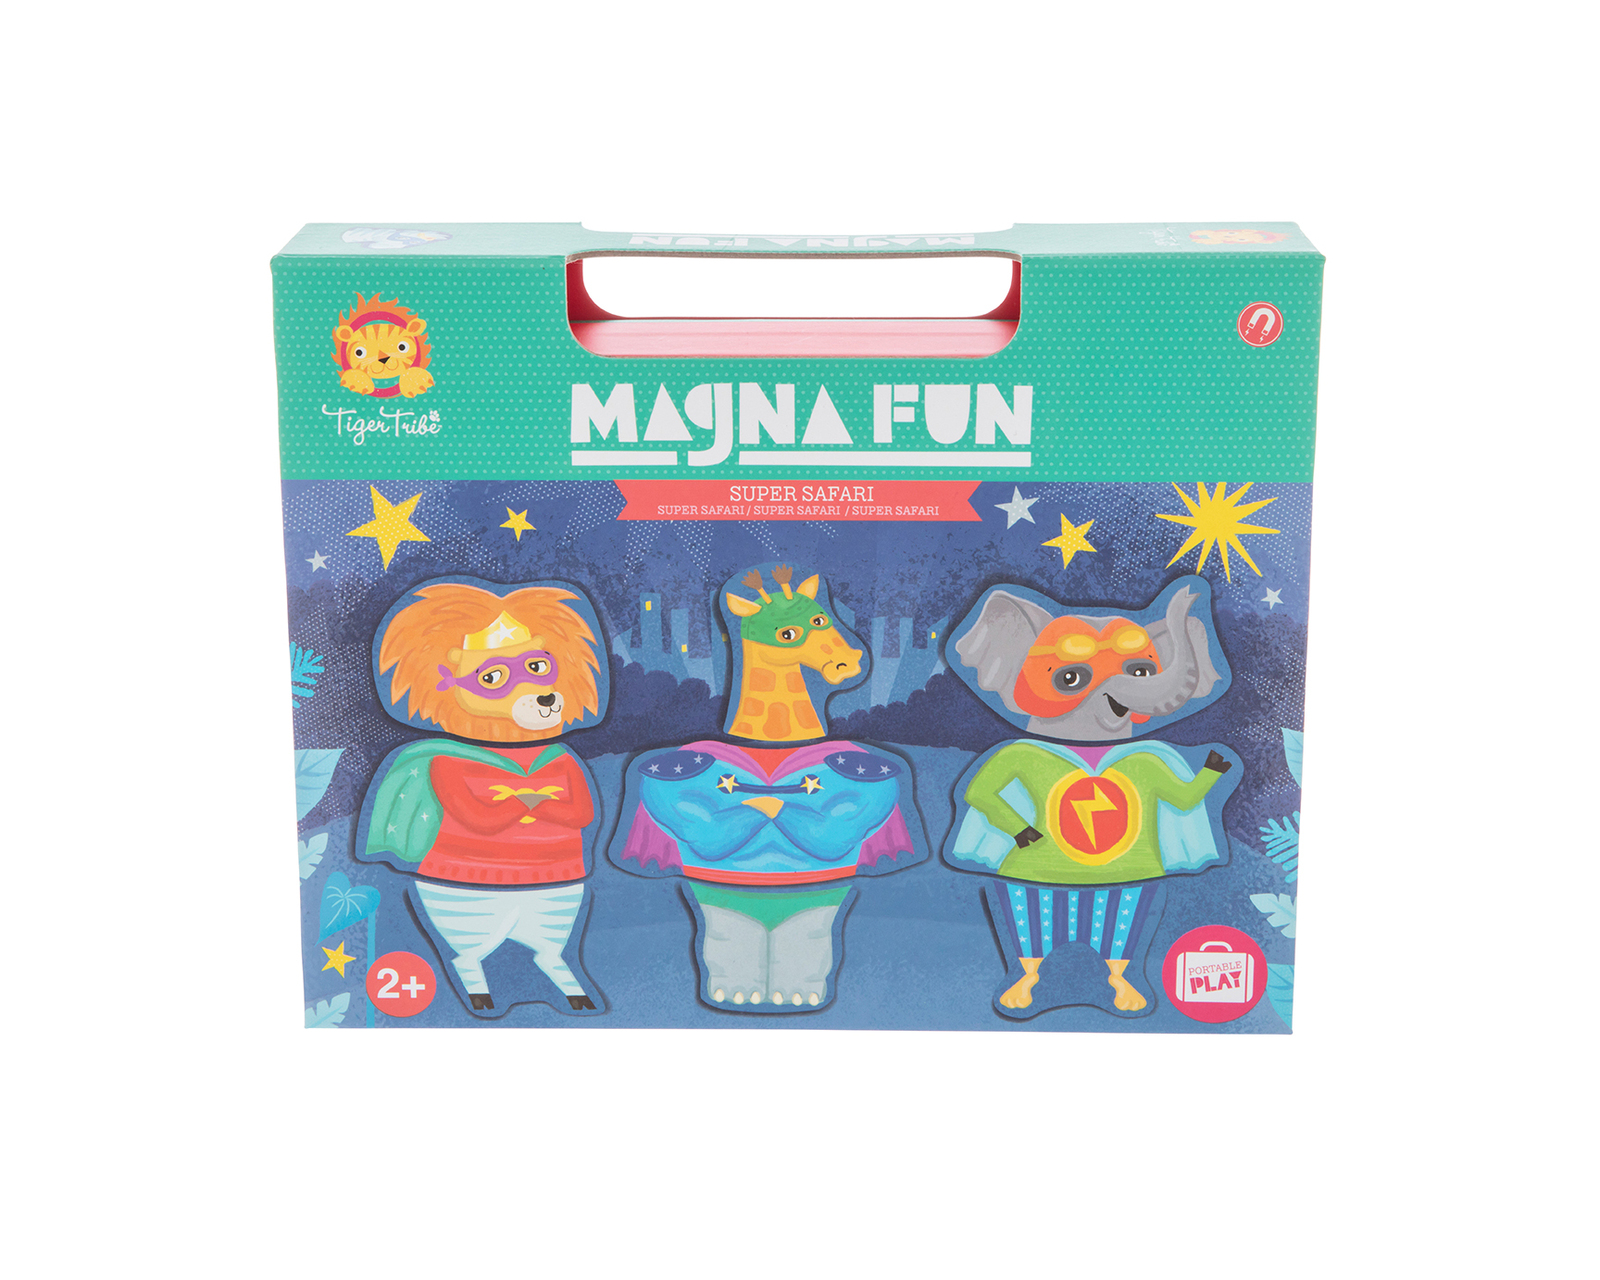 Magna Fun ~ Super Safari by Tiger Tribe   2+